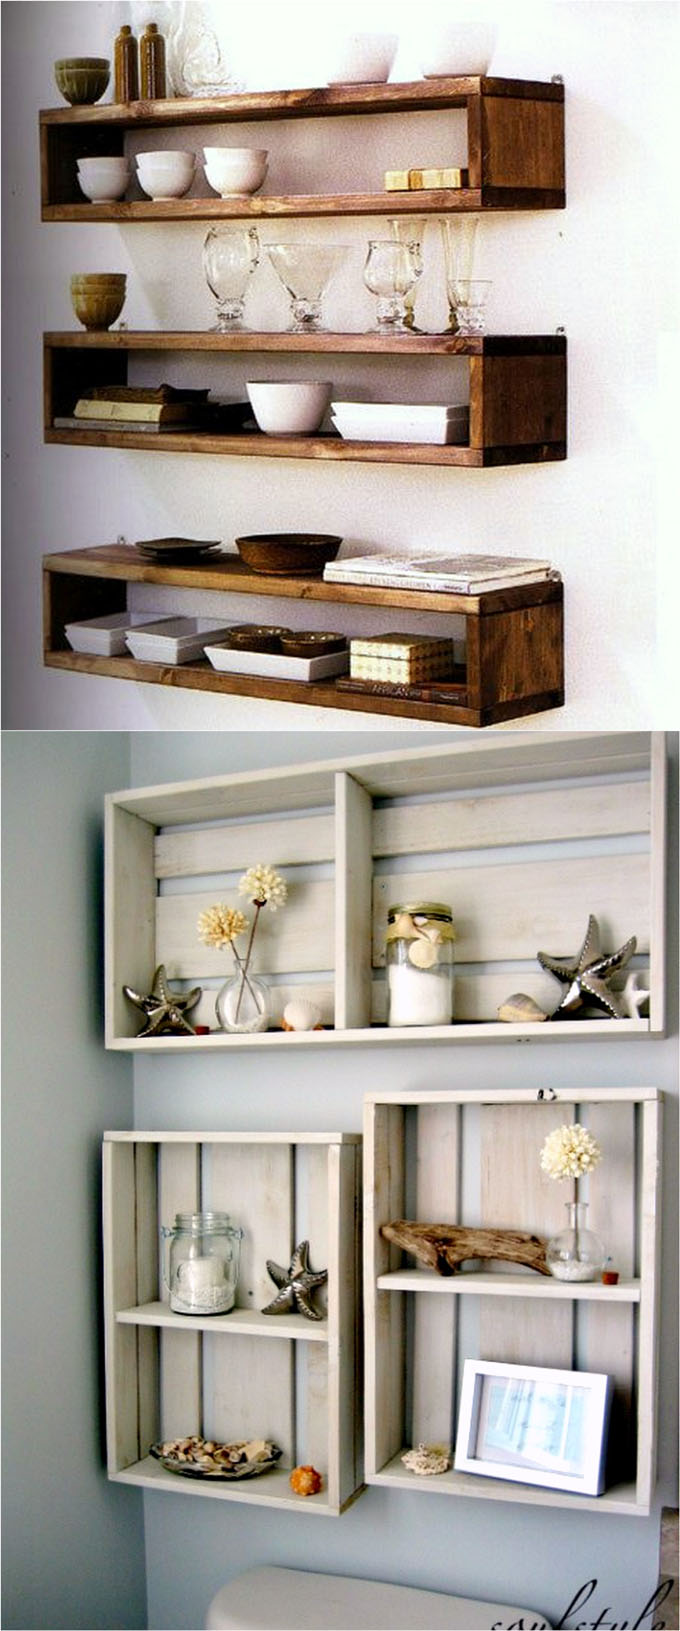 diy wall shelves ideas 19 diy floating shelves ideas best of diy ideas 788